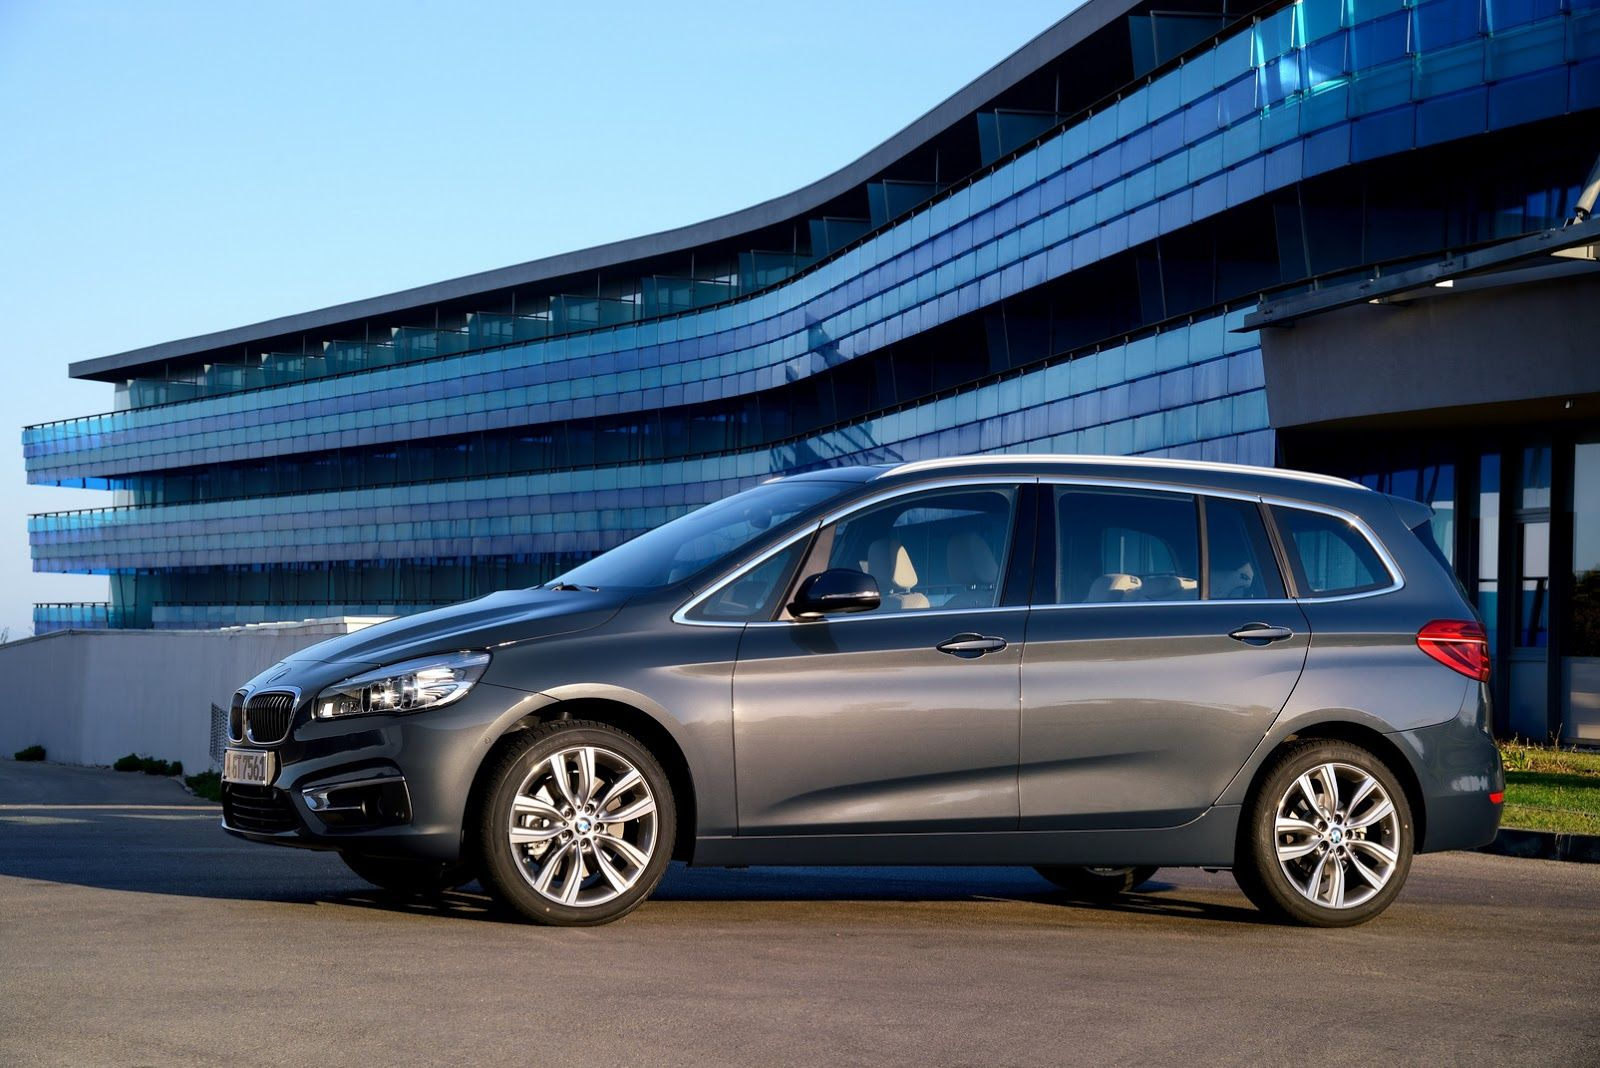 Bmw Parades New 2 Series Gran Tourer Minivan In 202 Photos Carscoops Bmw 2er Bmw Tourer